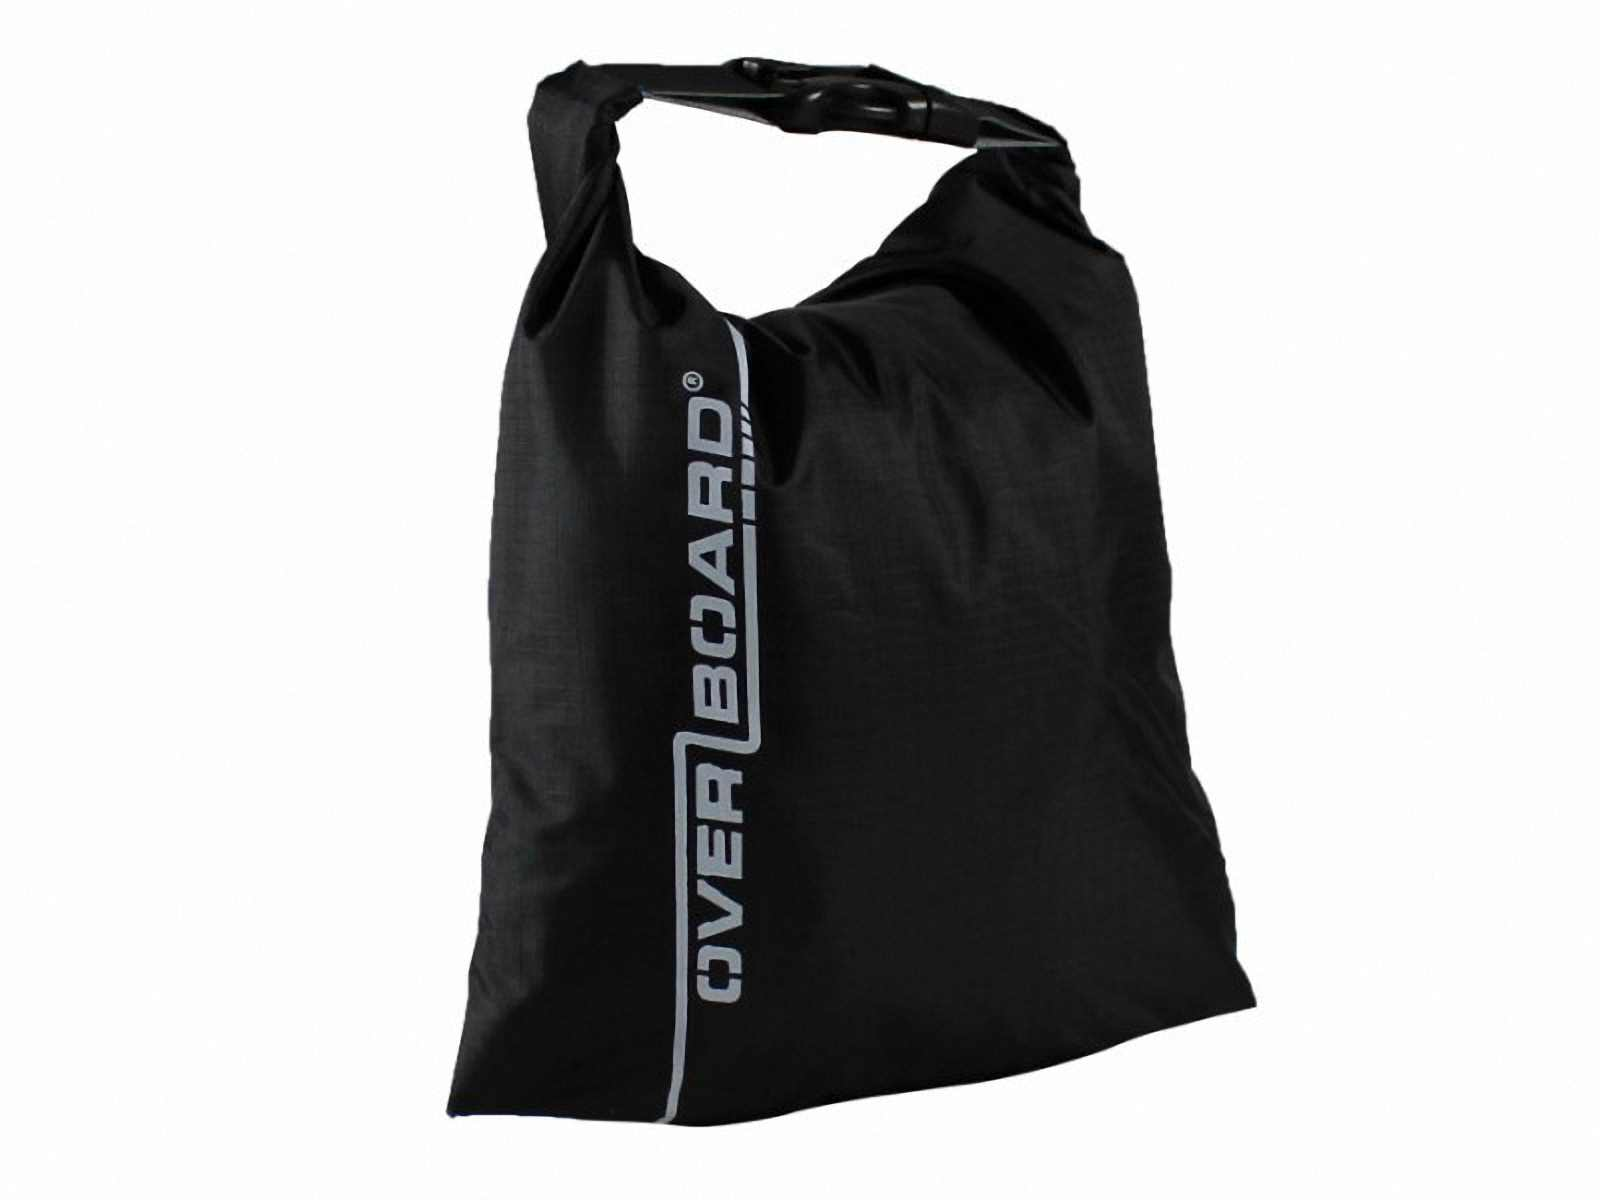 Водонепроницаемый гермомешок OverBoard OB1031BLK - Waterproof Dry Pouch - 1L (Black)